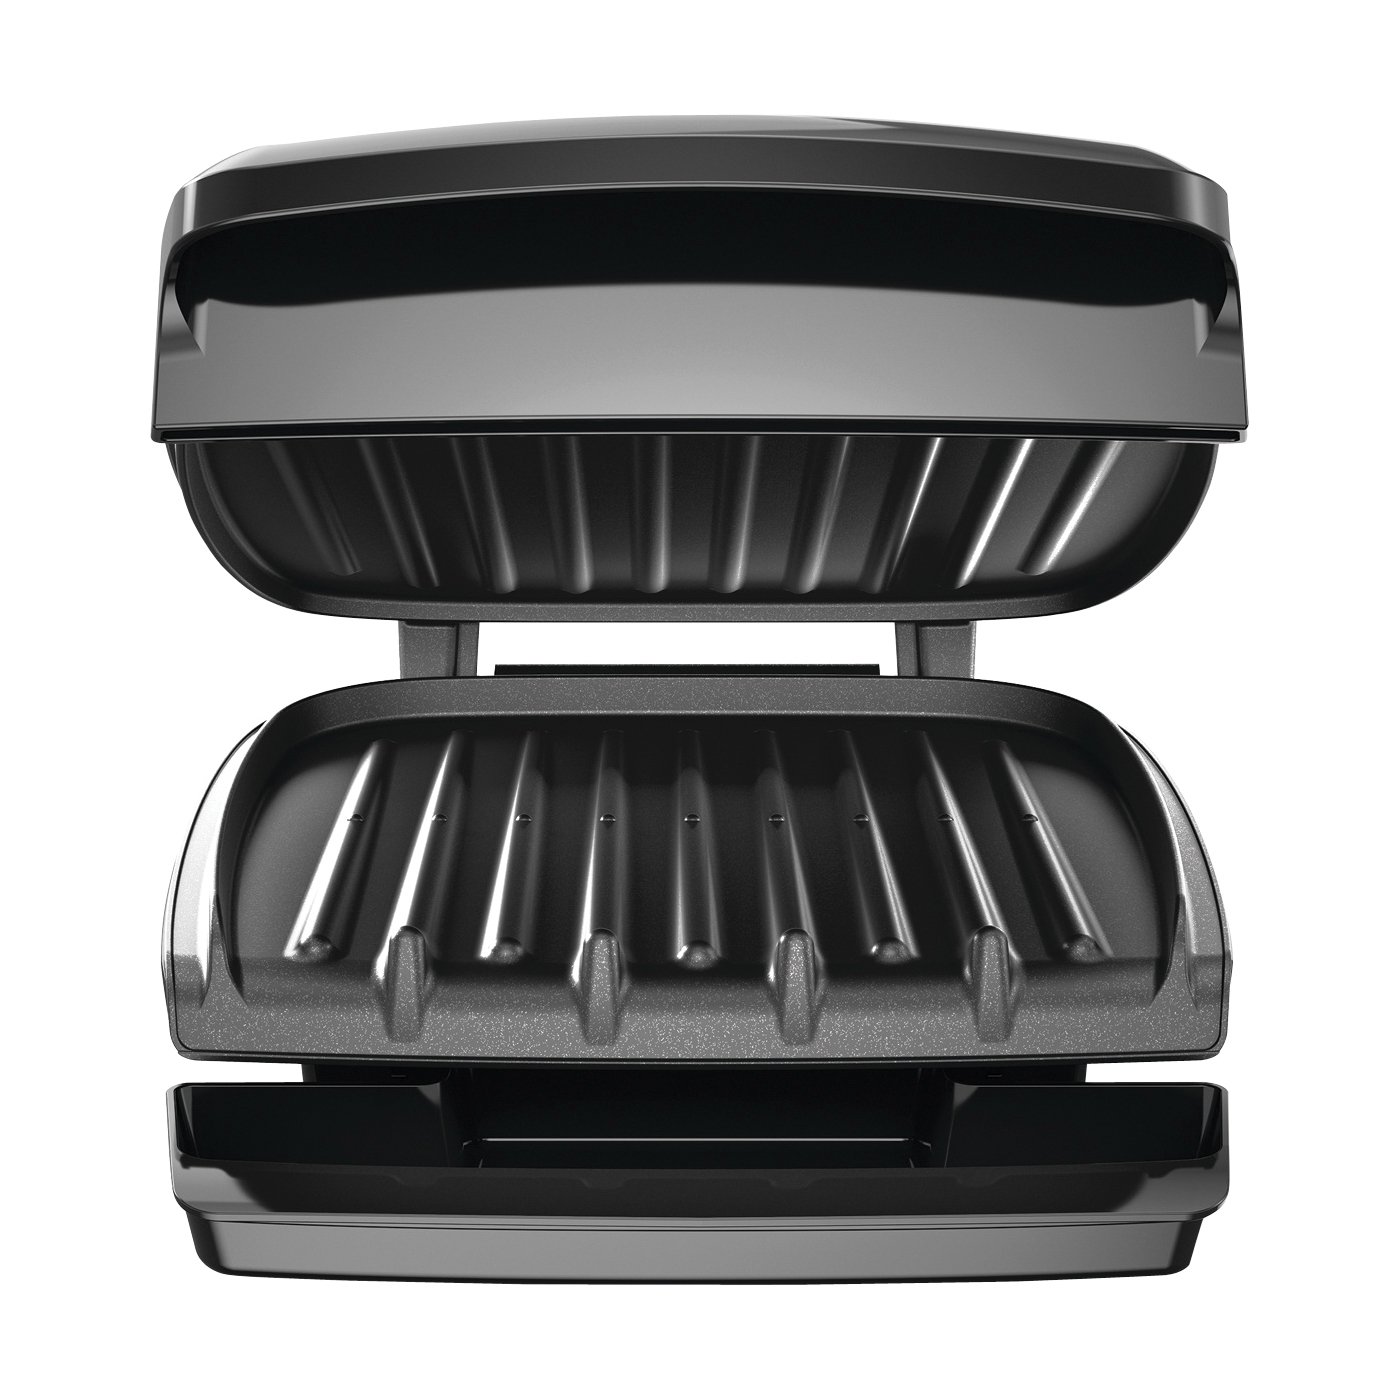 Picture of George Foreman GR340FB Plate Grill, 1000 W, 120 V, Metal/Plastic, Black